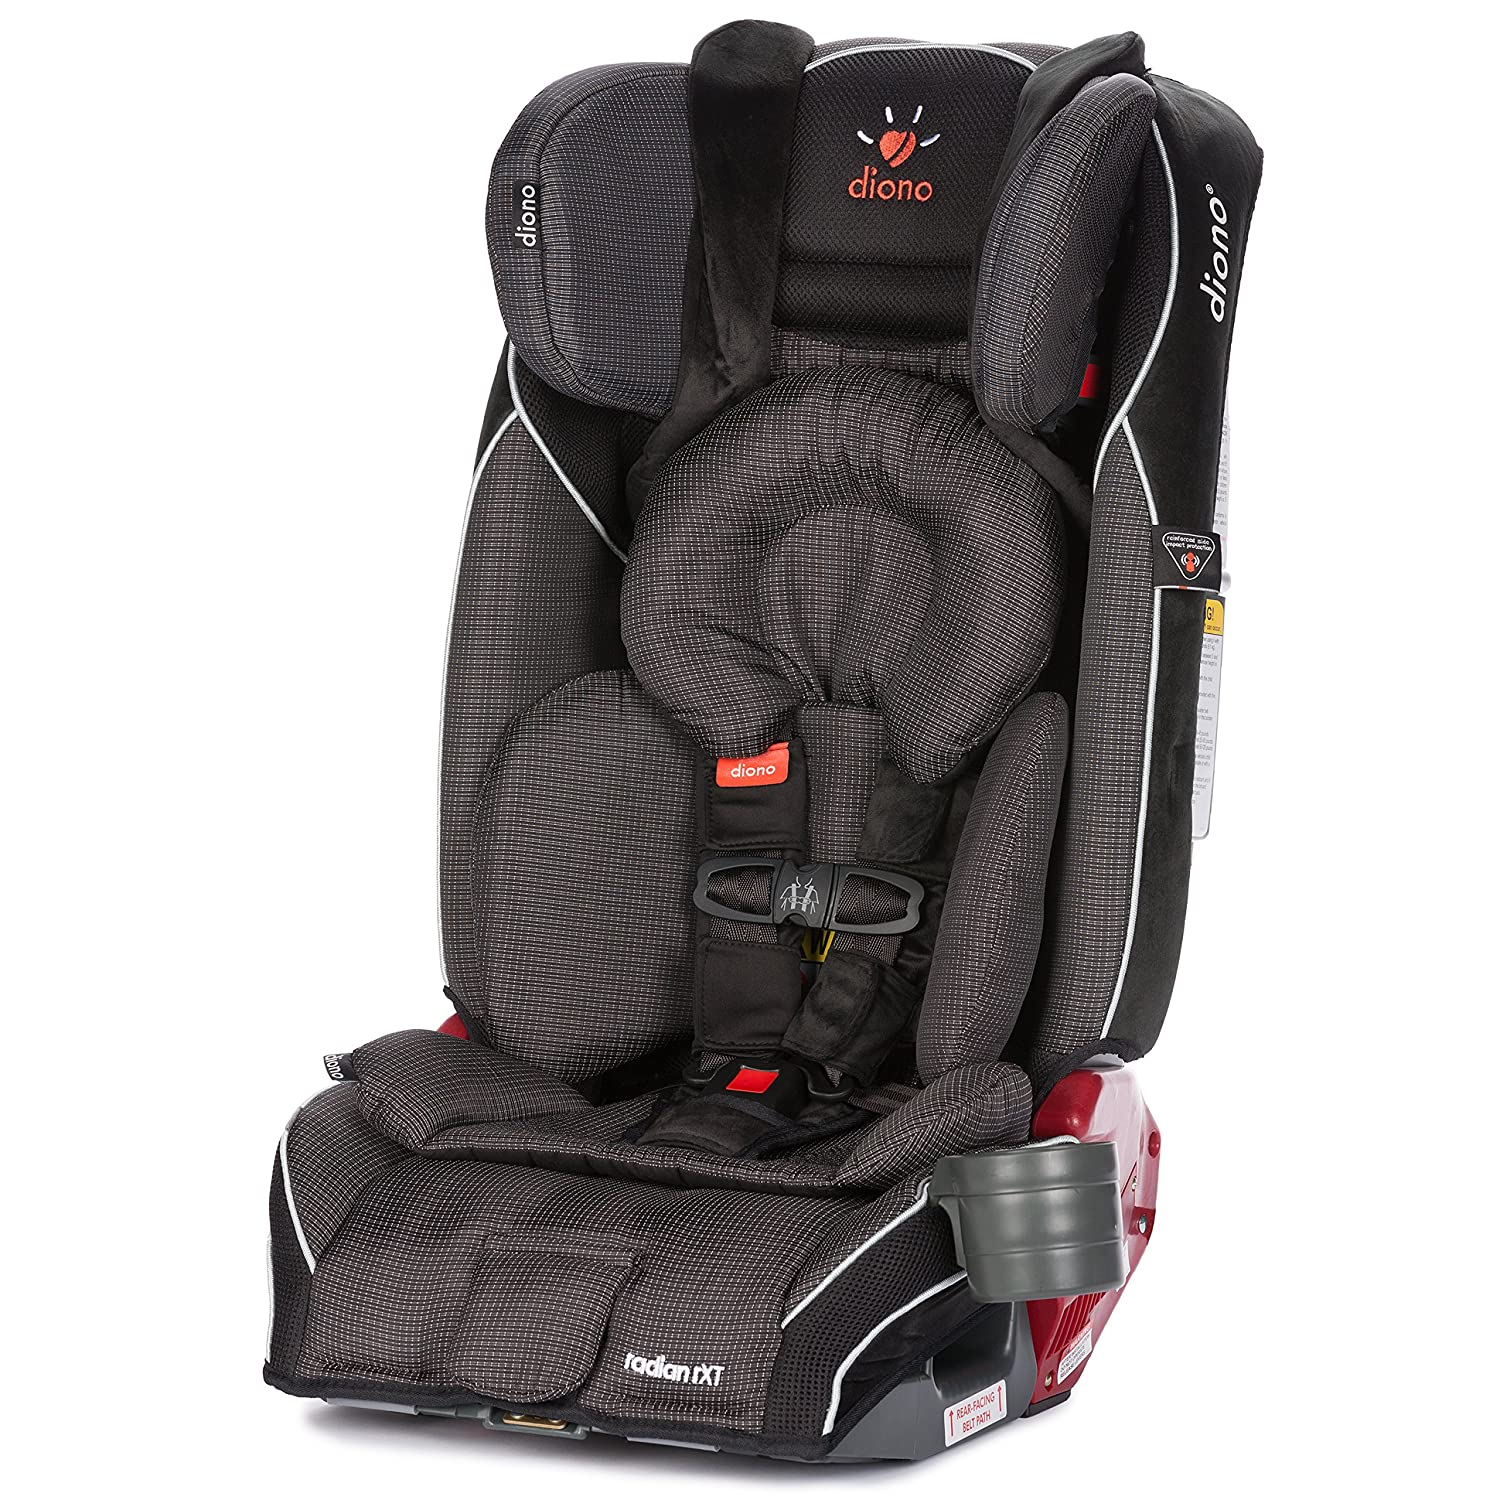 diono radian rxt storm convertible car seat reviews. Black Bedroom Furniture Sets. Home Design Ideas